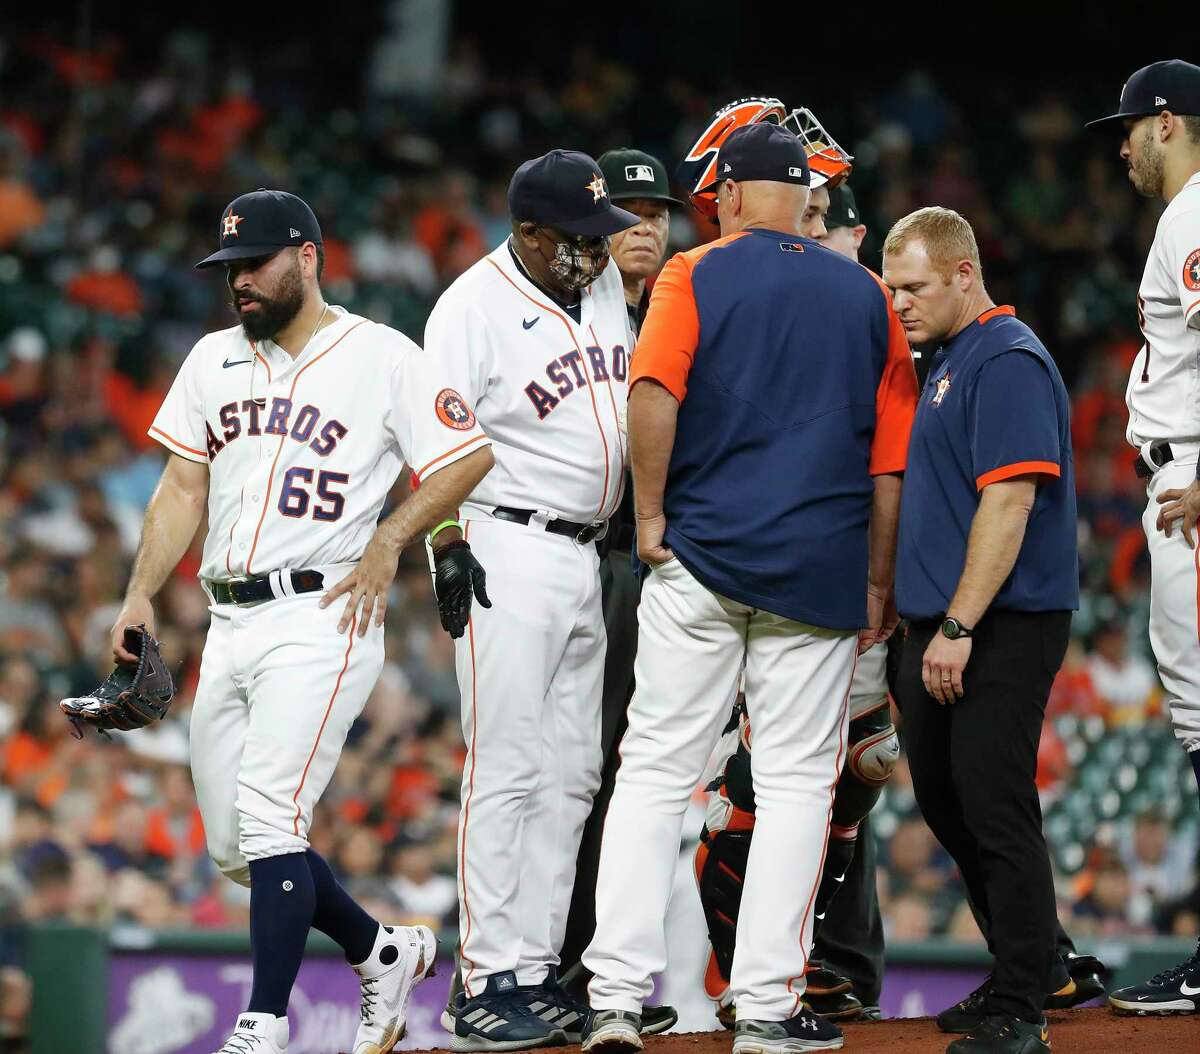 Astros righthander Jose Urquidy (65) departed his June 29 start after recording four outs, leading to his second trip to the injured list this season with a shoulder ailment.